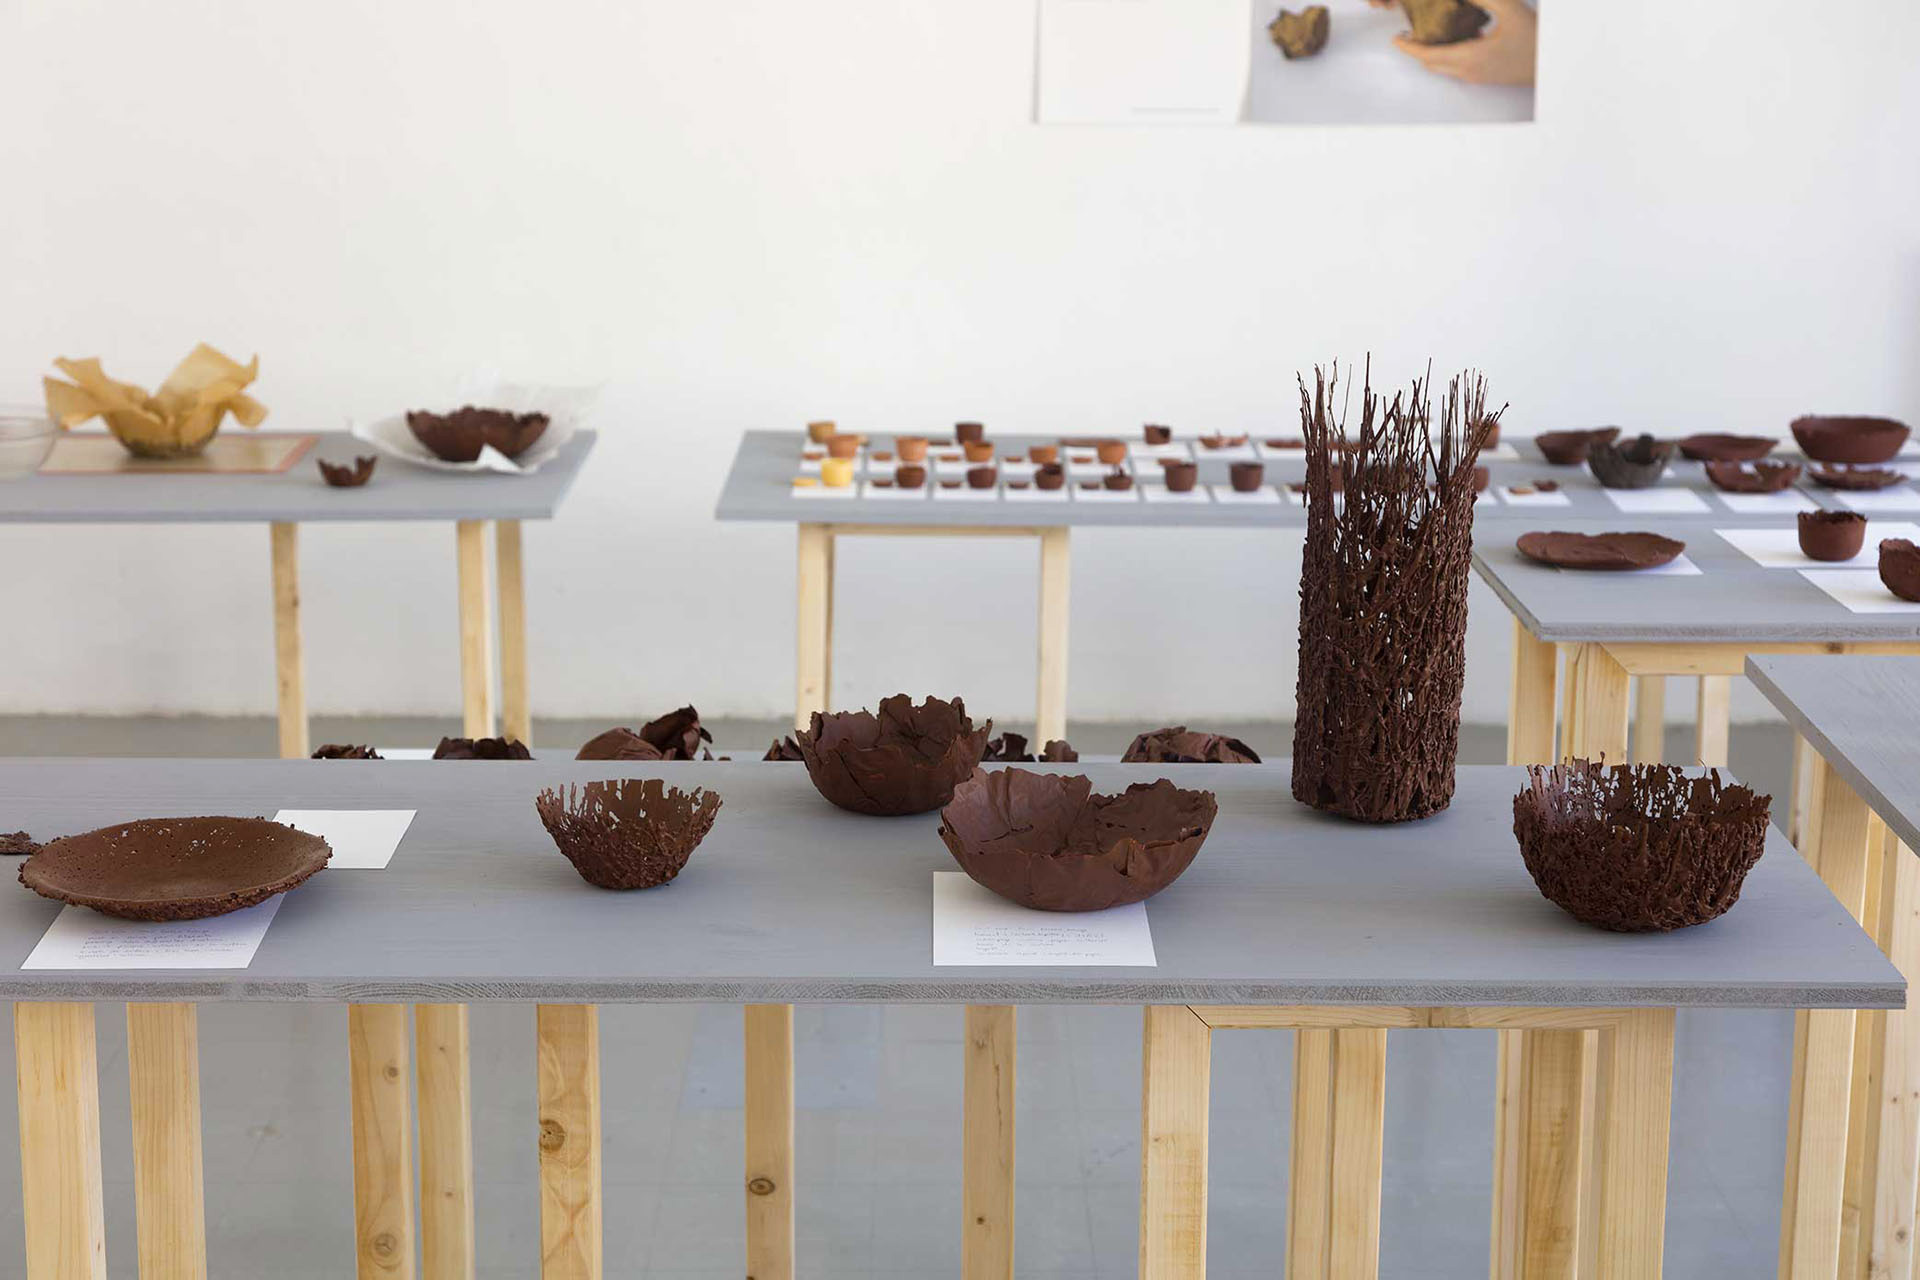 ecole_design_culinaire_master_food_materials_research_scenographie